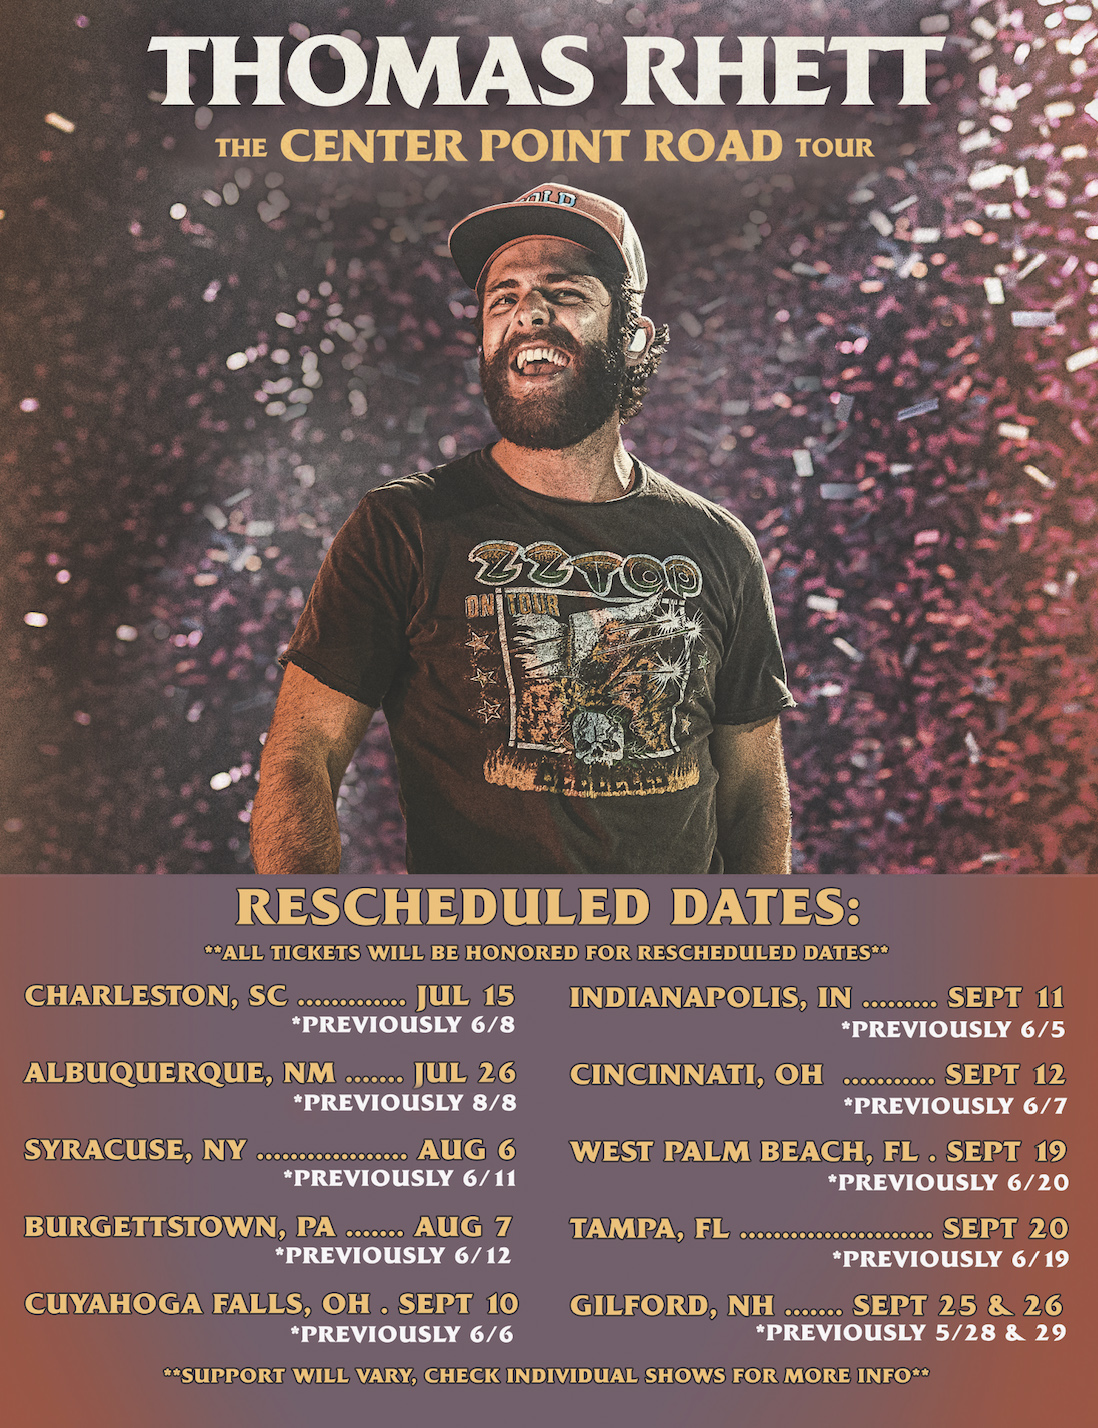 Thomas Rhett Reschedules Center Point Road Tour Dates For July Musicrow Com